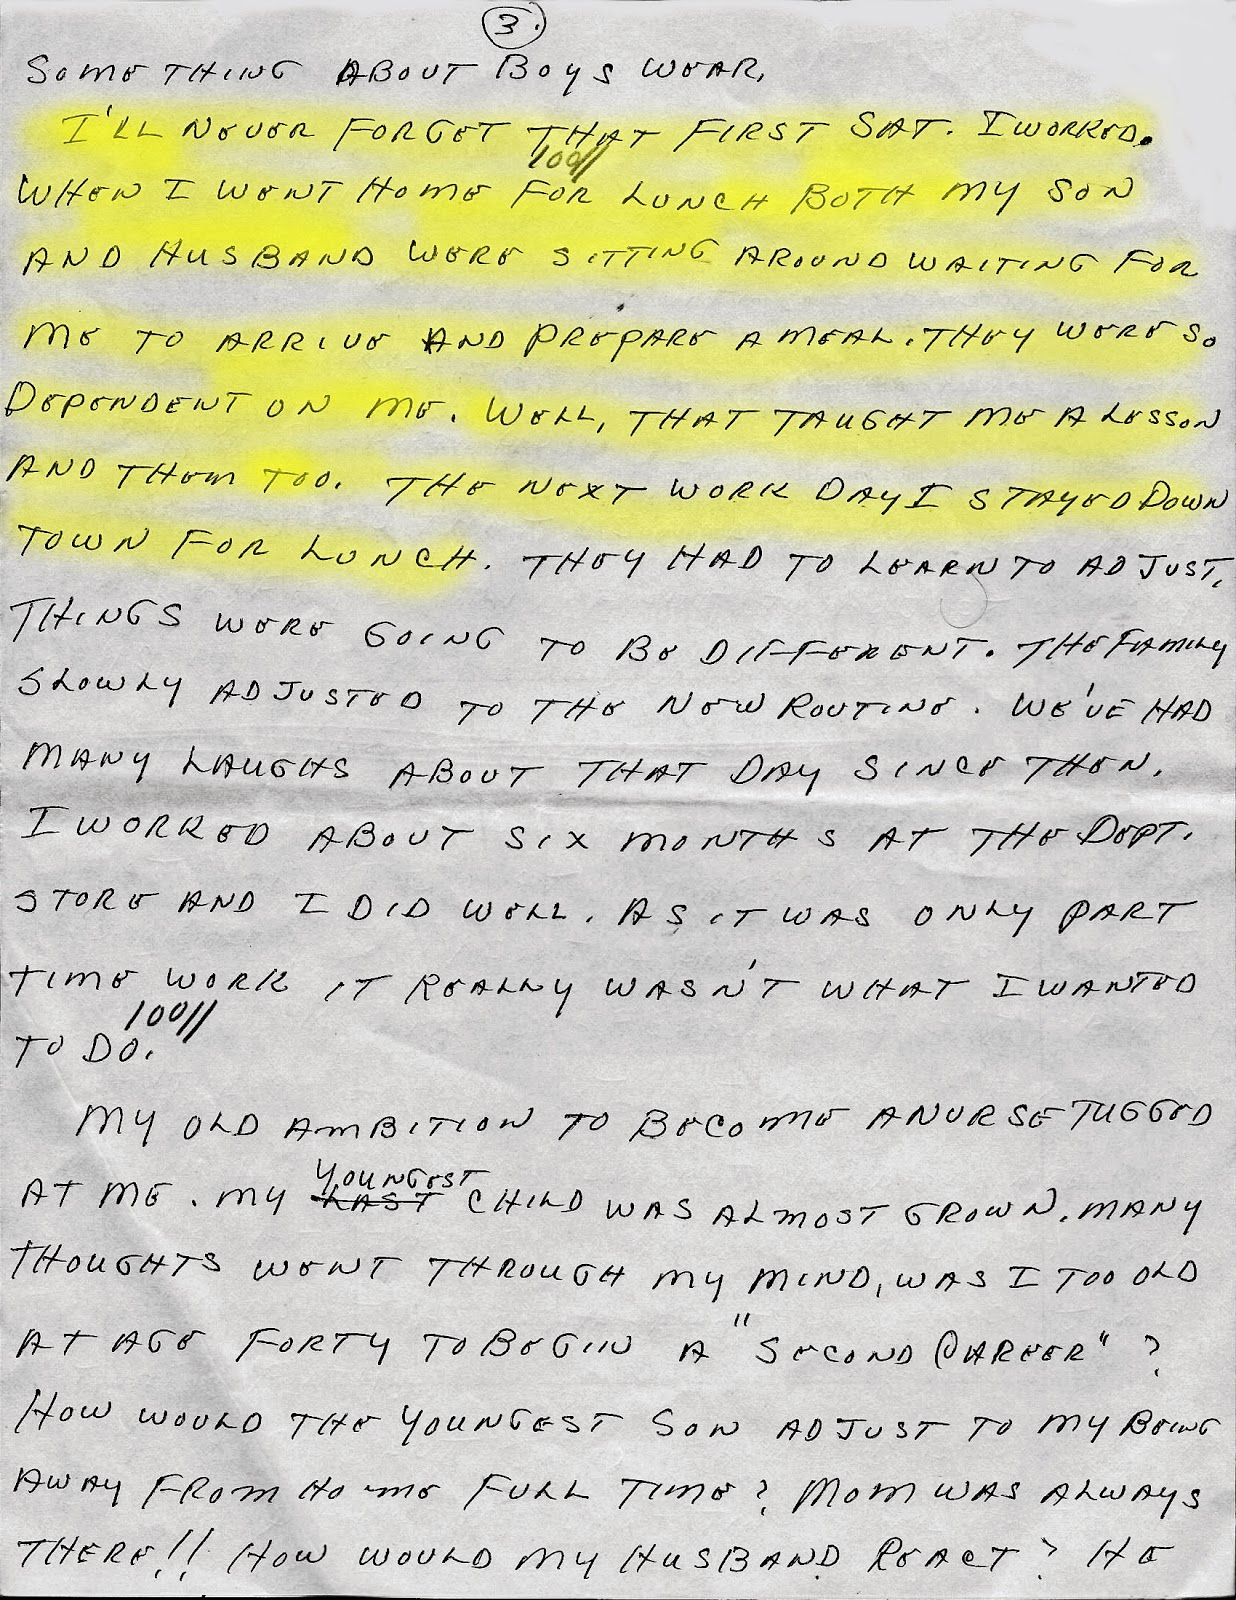 chuckography i m in a great gene pool this is page 3 of a short essay my mother wrote 30 1976 it was about 1 200 words